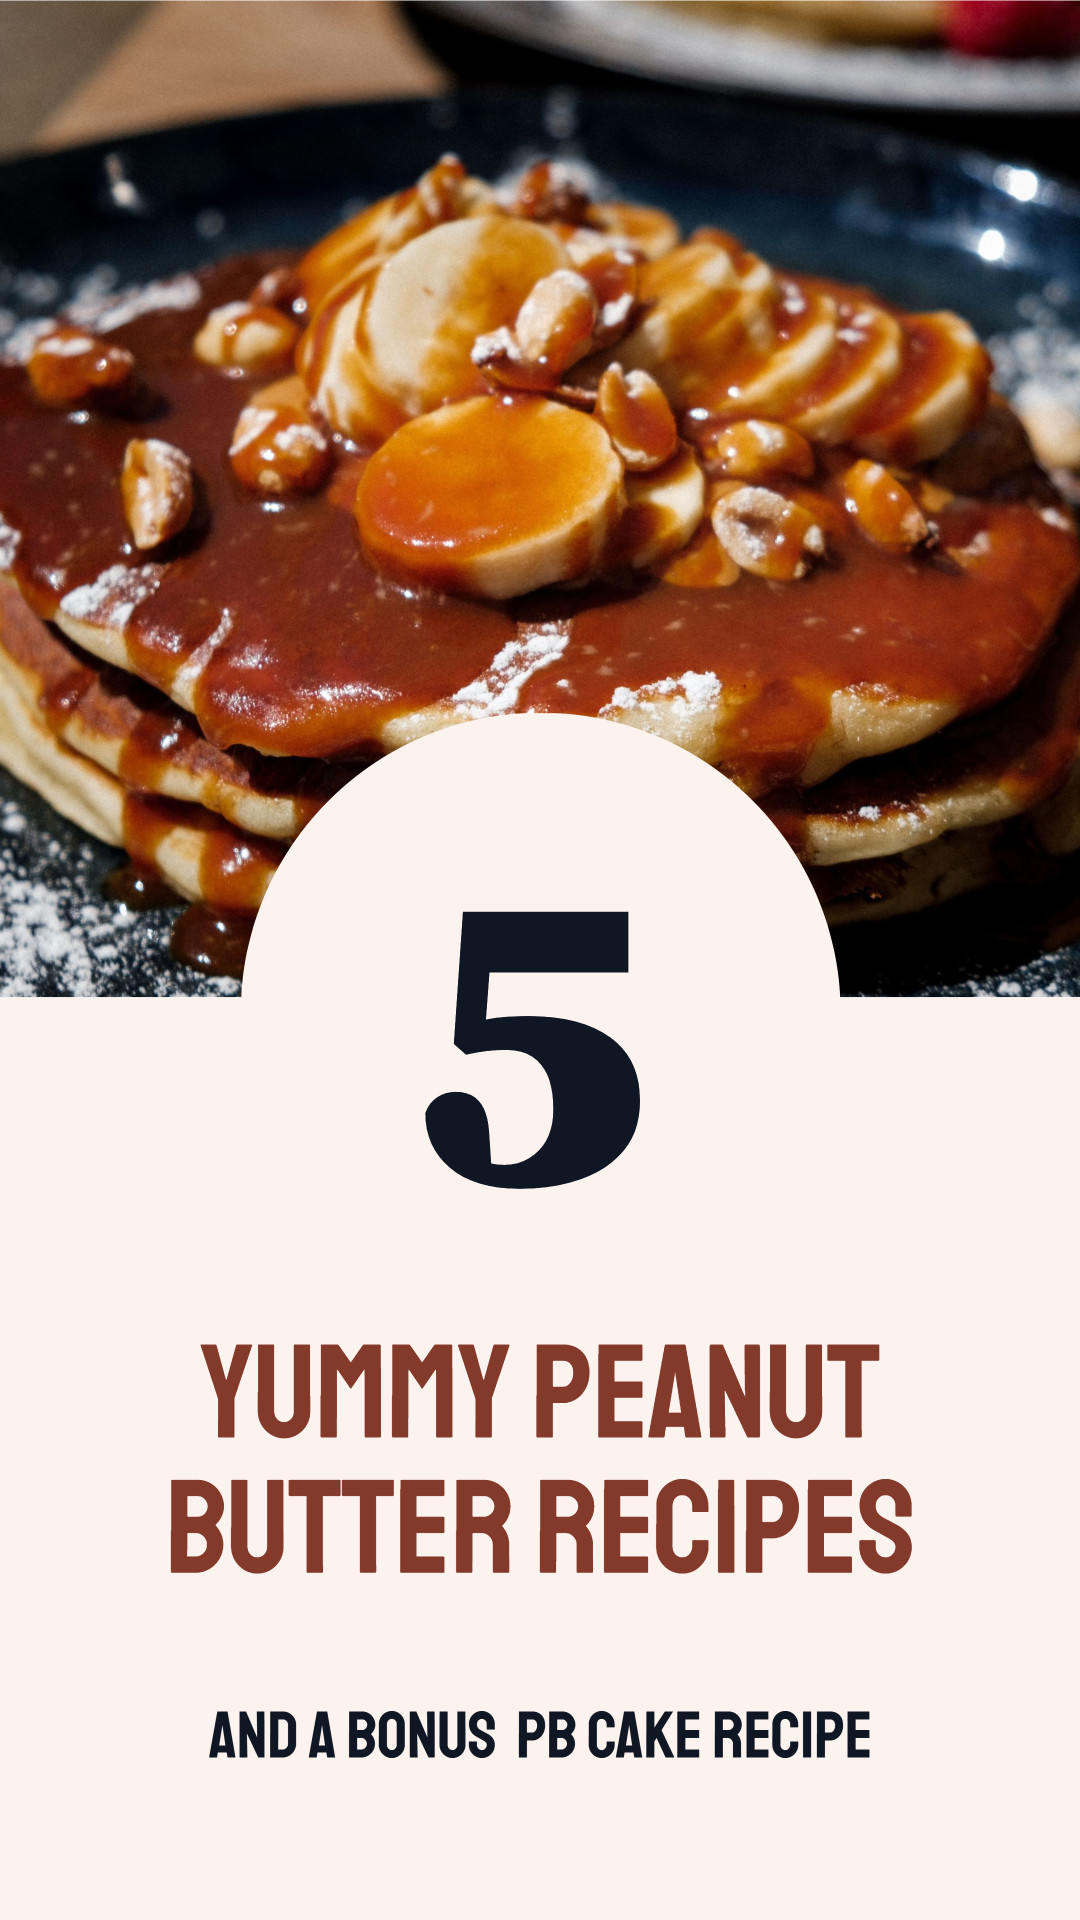 Food blogger template design for peanut butter recipes